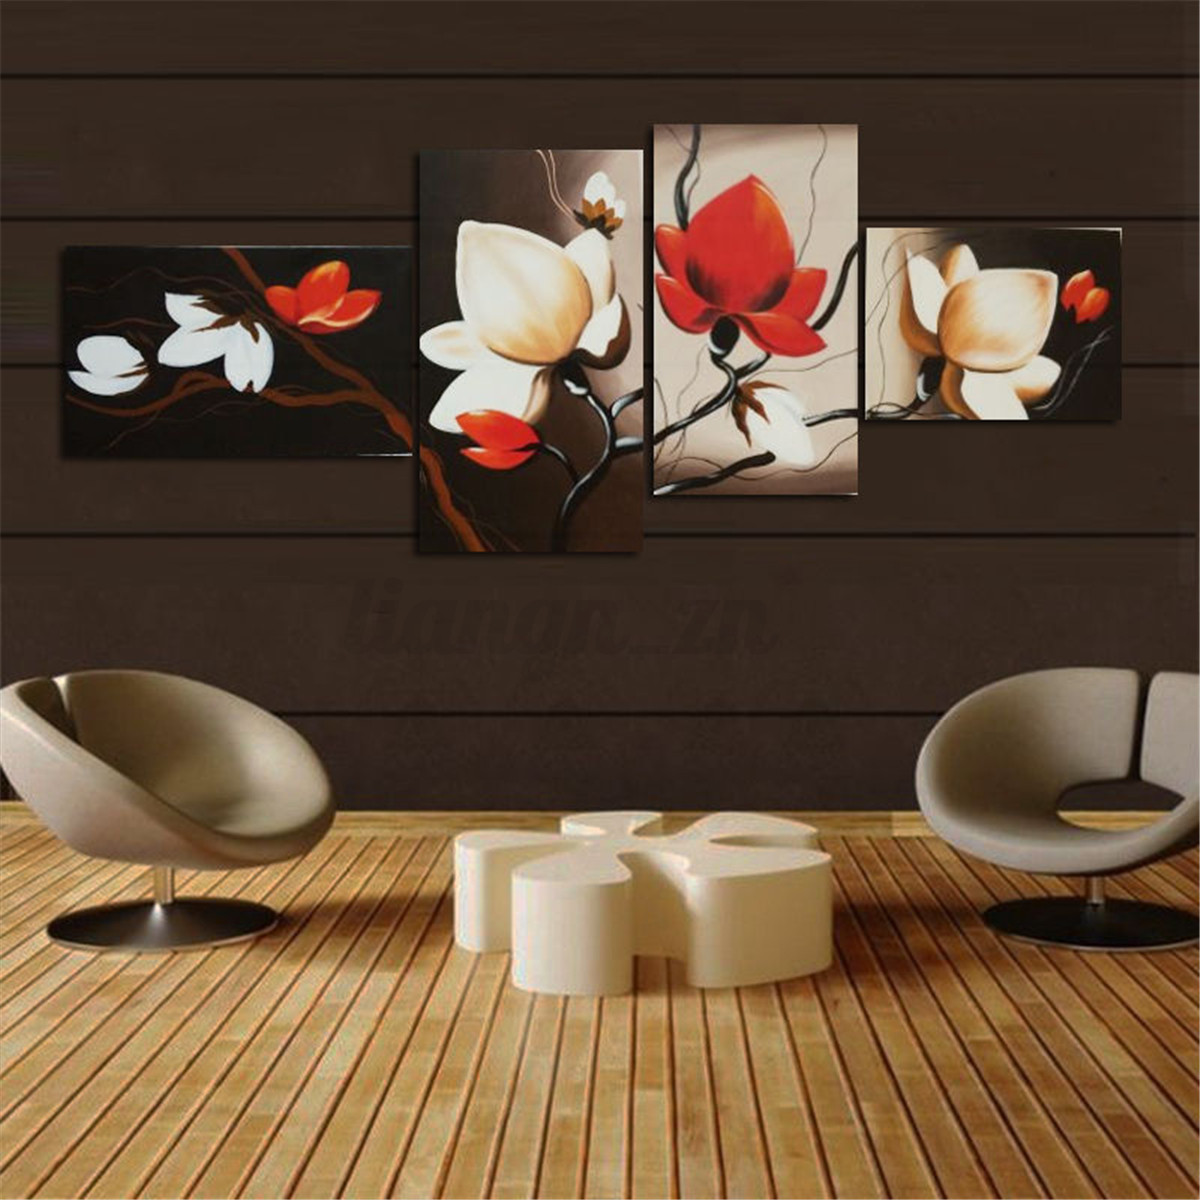 Huge-Modern-Abstract-Canvas-Print-Painting-Picture-Wall-Mural-Hanging-Home-Decor